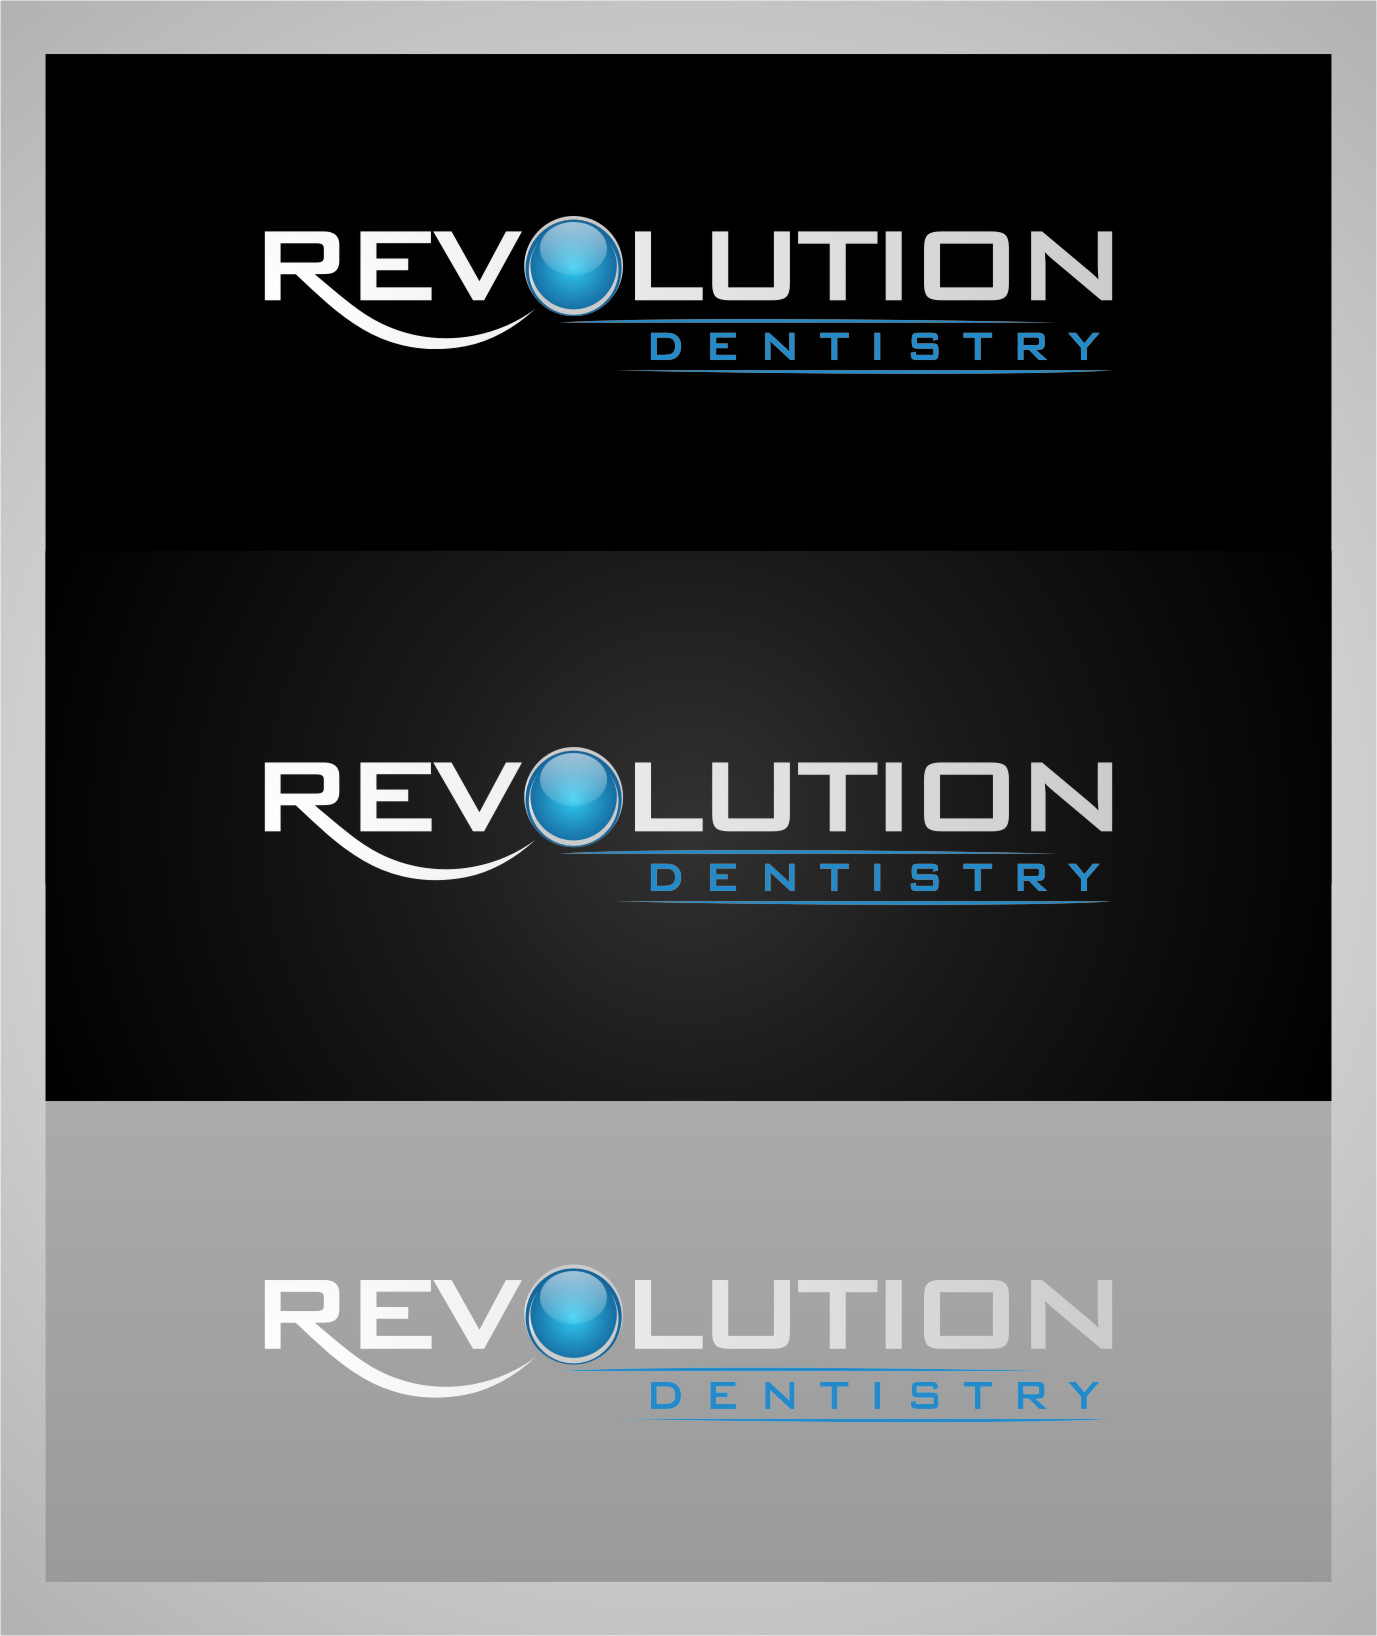 Logo Design by Ngepet_art - Entry No. 106 in the Logo Design Contest Artistic Logo Design for Revolution Dentistry.